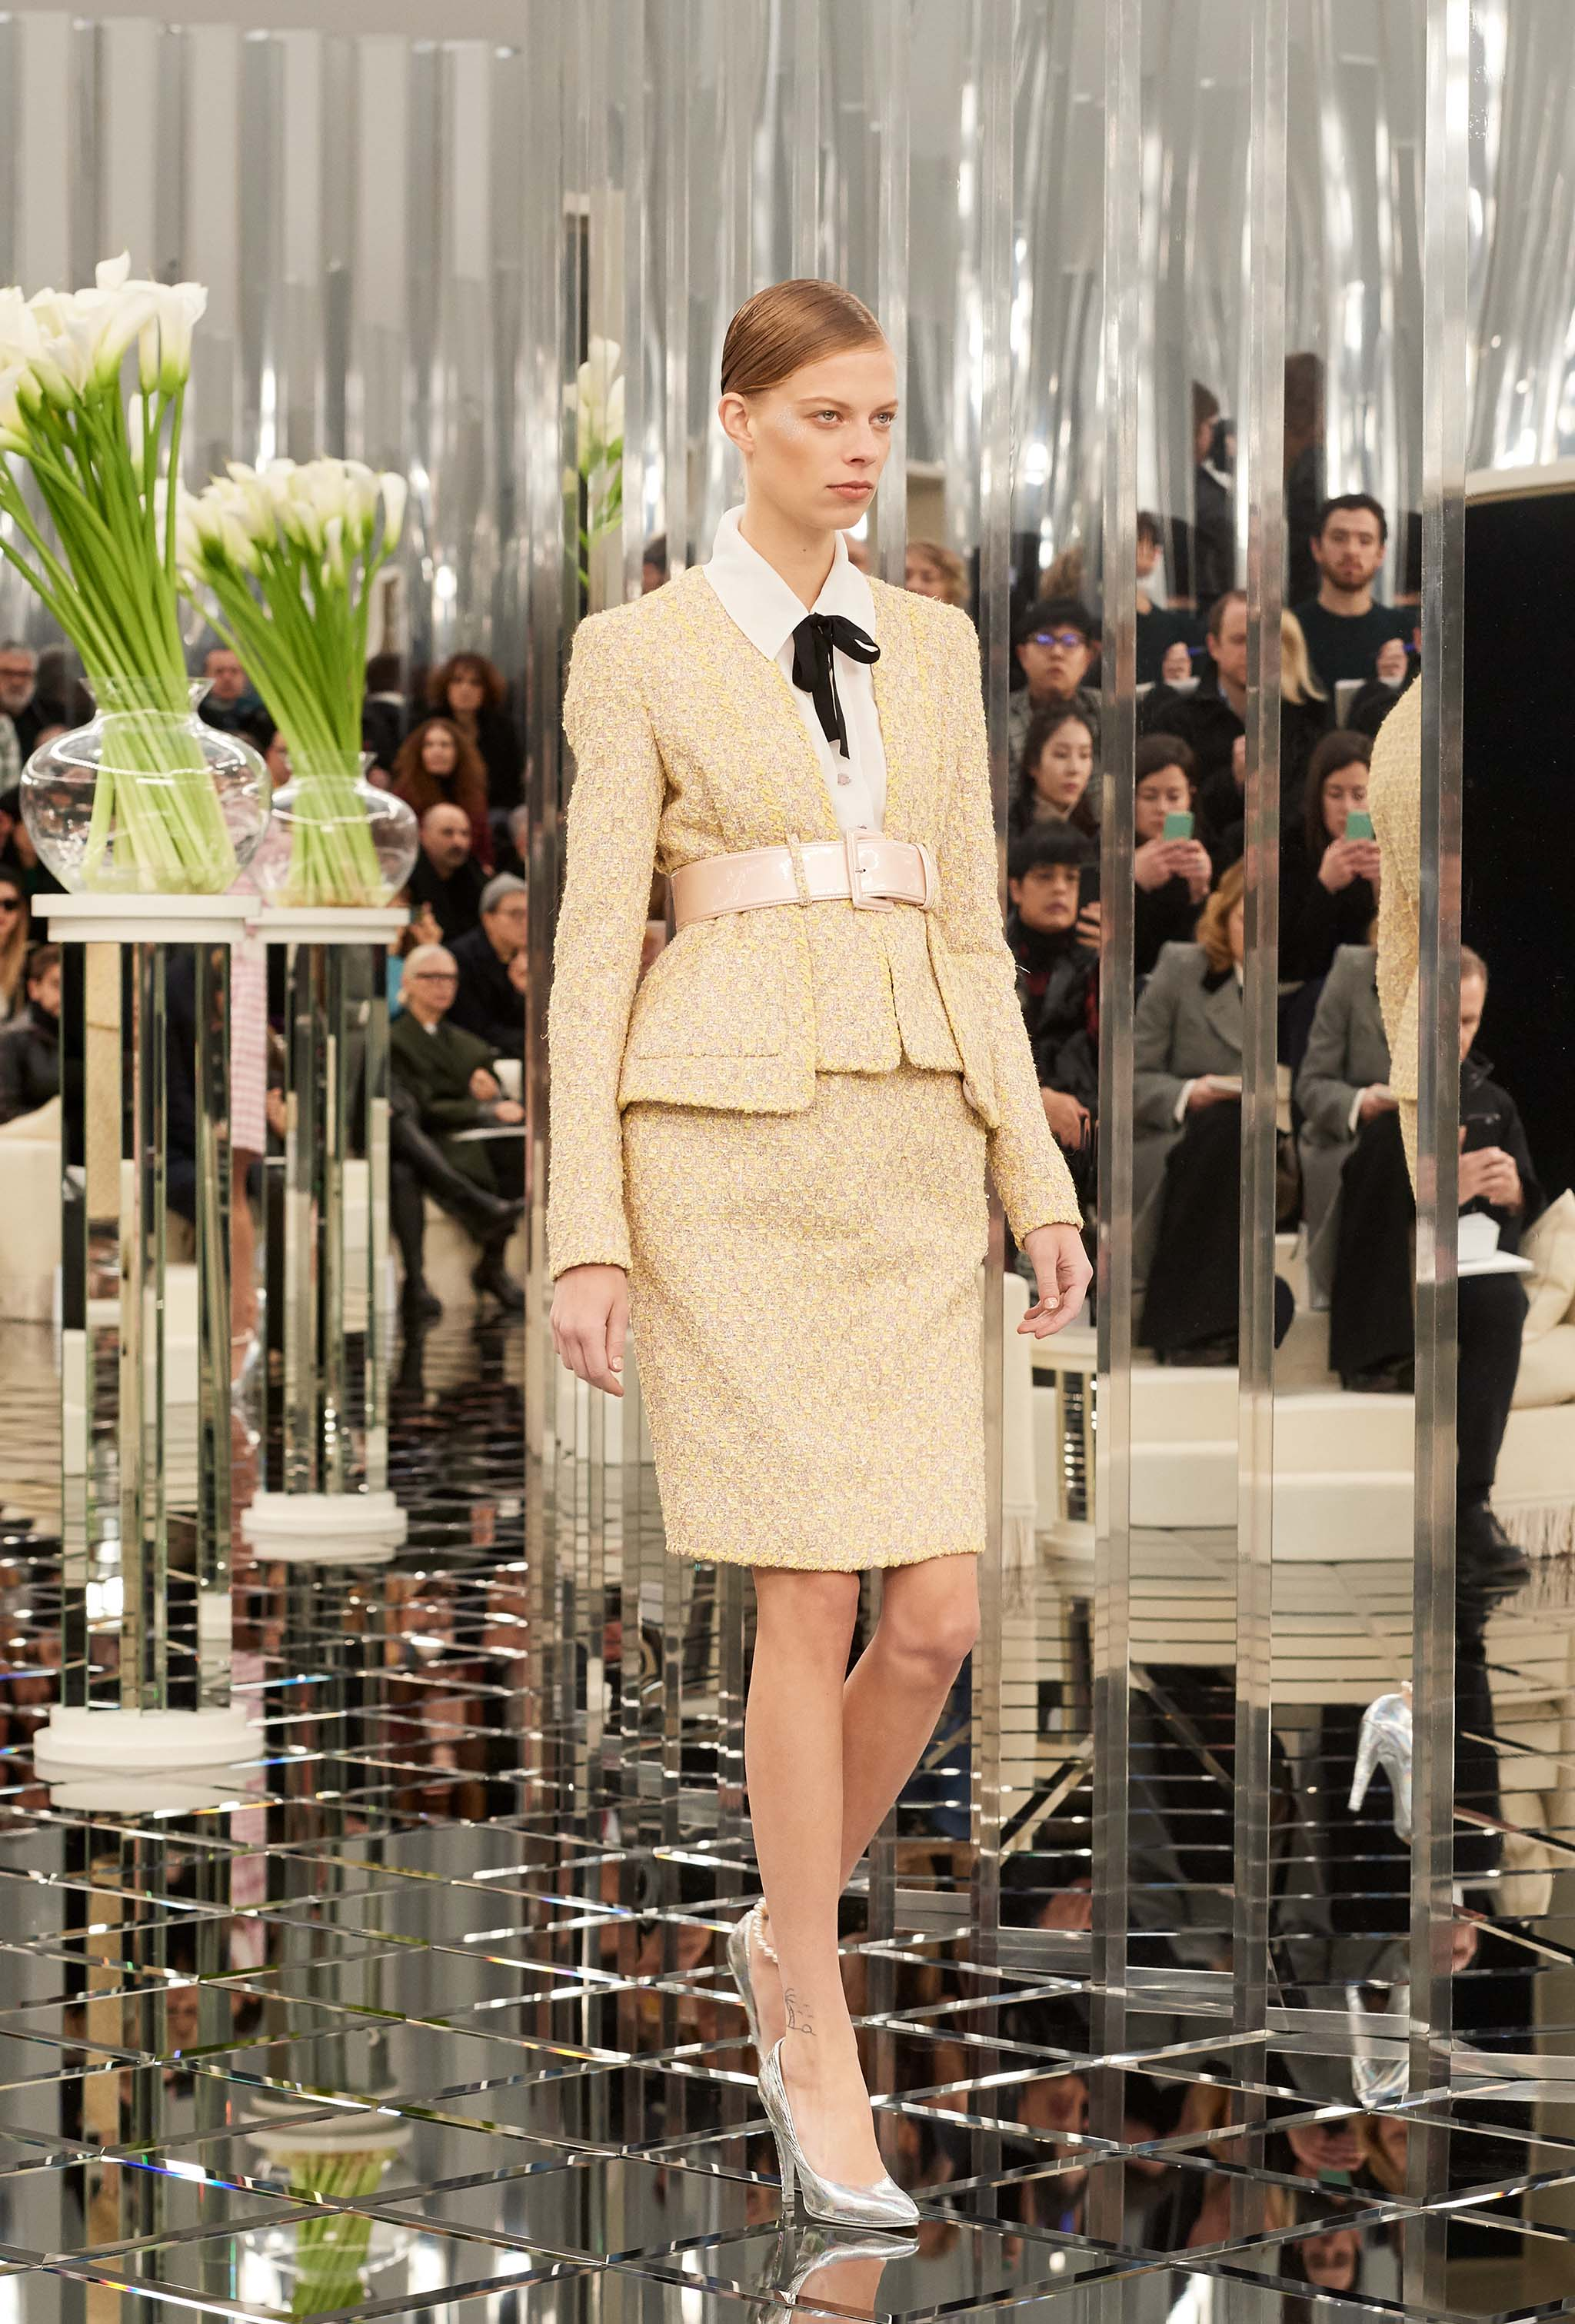 Chanel Haute Couture Spring-Summer 2017 runway show 4ed4c52a048b